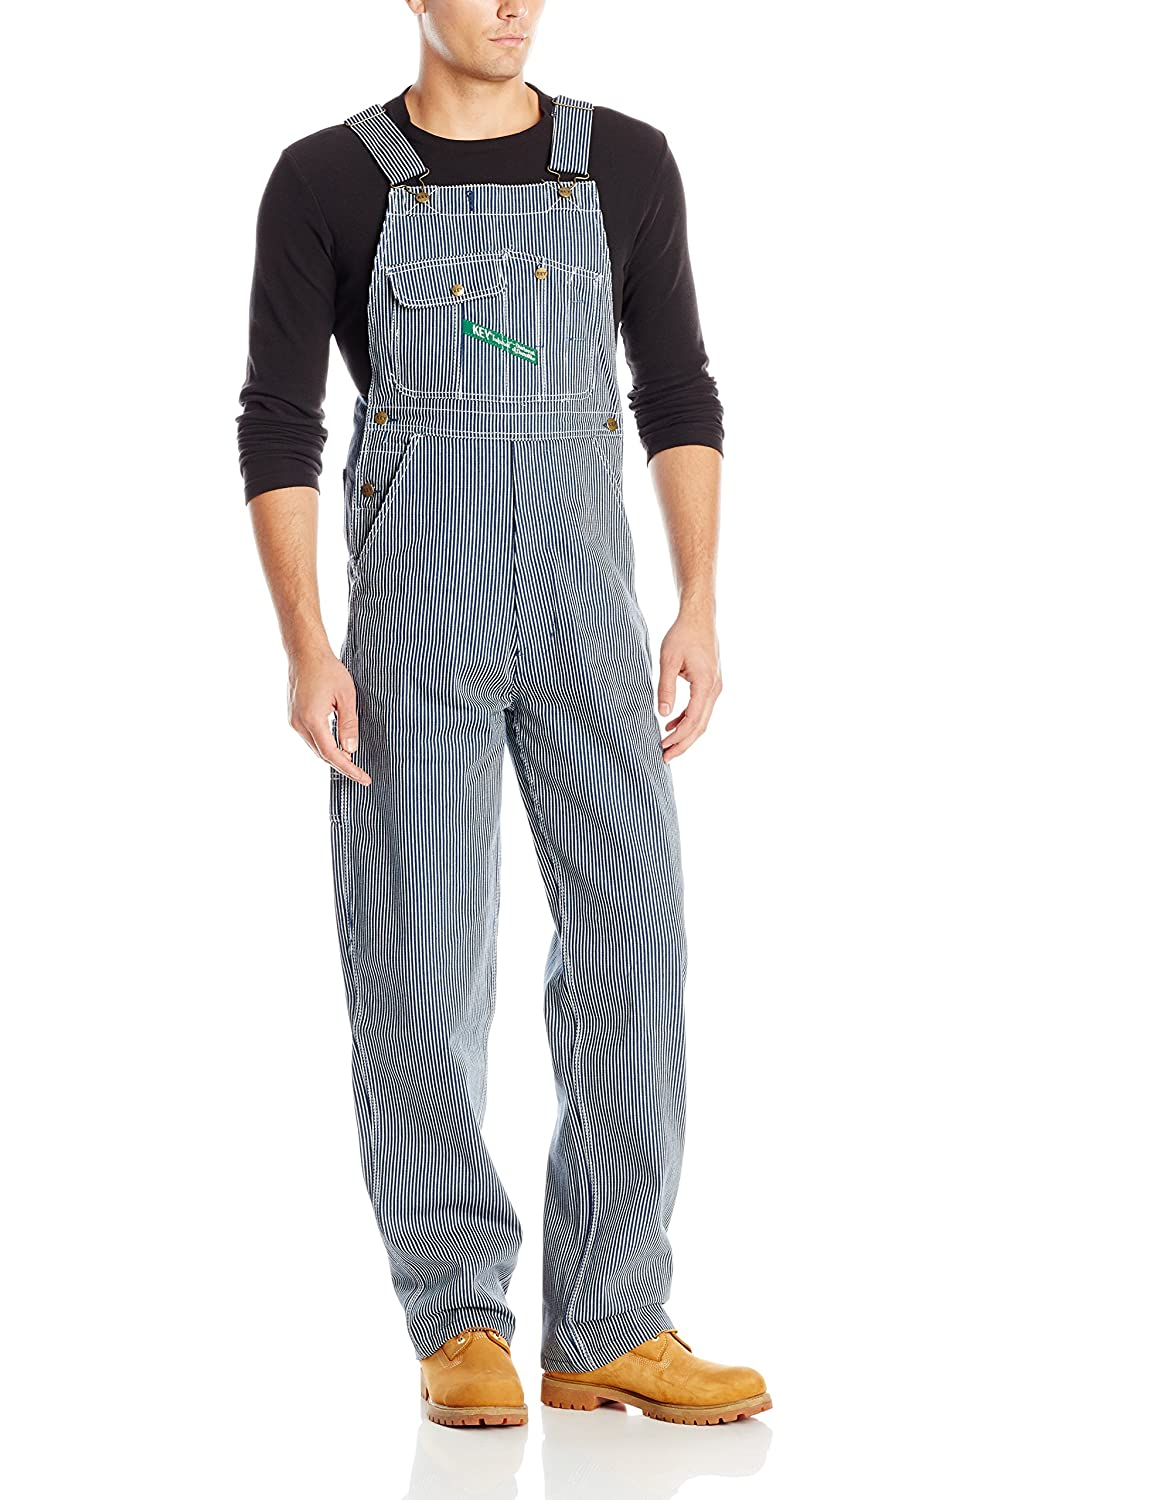 Men's Vintage Pants, Trousers, Jeans, Overalls Key Apparel Mens Hickory Stipe High Back Bib Overall $54.97 AT vintagedancer.com